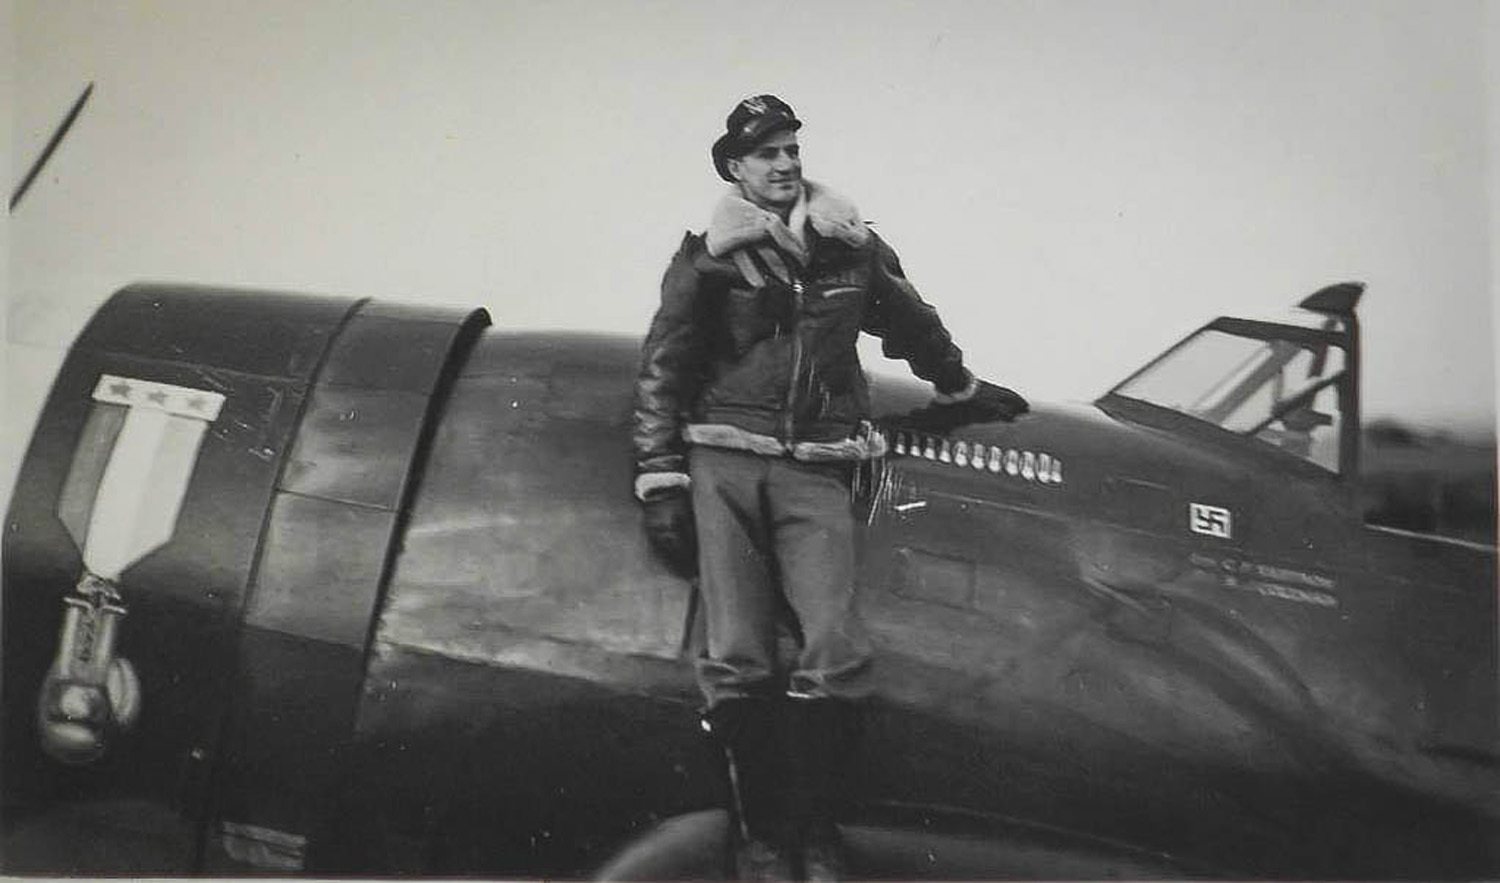 Capt. Carl Ekstrom poses with his battle tested P-47 Thunderbolt. Ekstrom was a two-time Golden Glove boxer which was signified by the distinct mural on his aircraft. Ekstrom was shot down over France while piloting a P-47 Thunderbolt following a bomber escort mission. (Courtesy Photo)